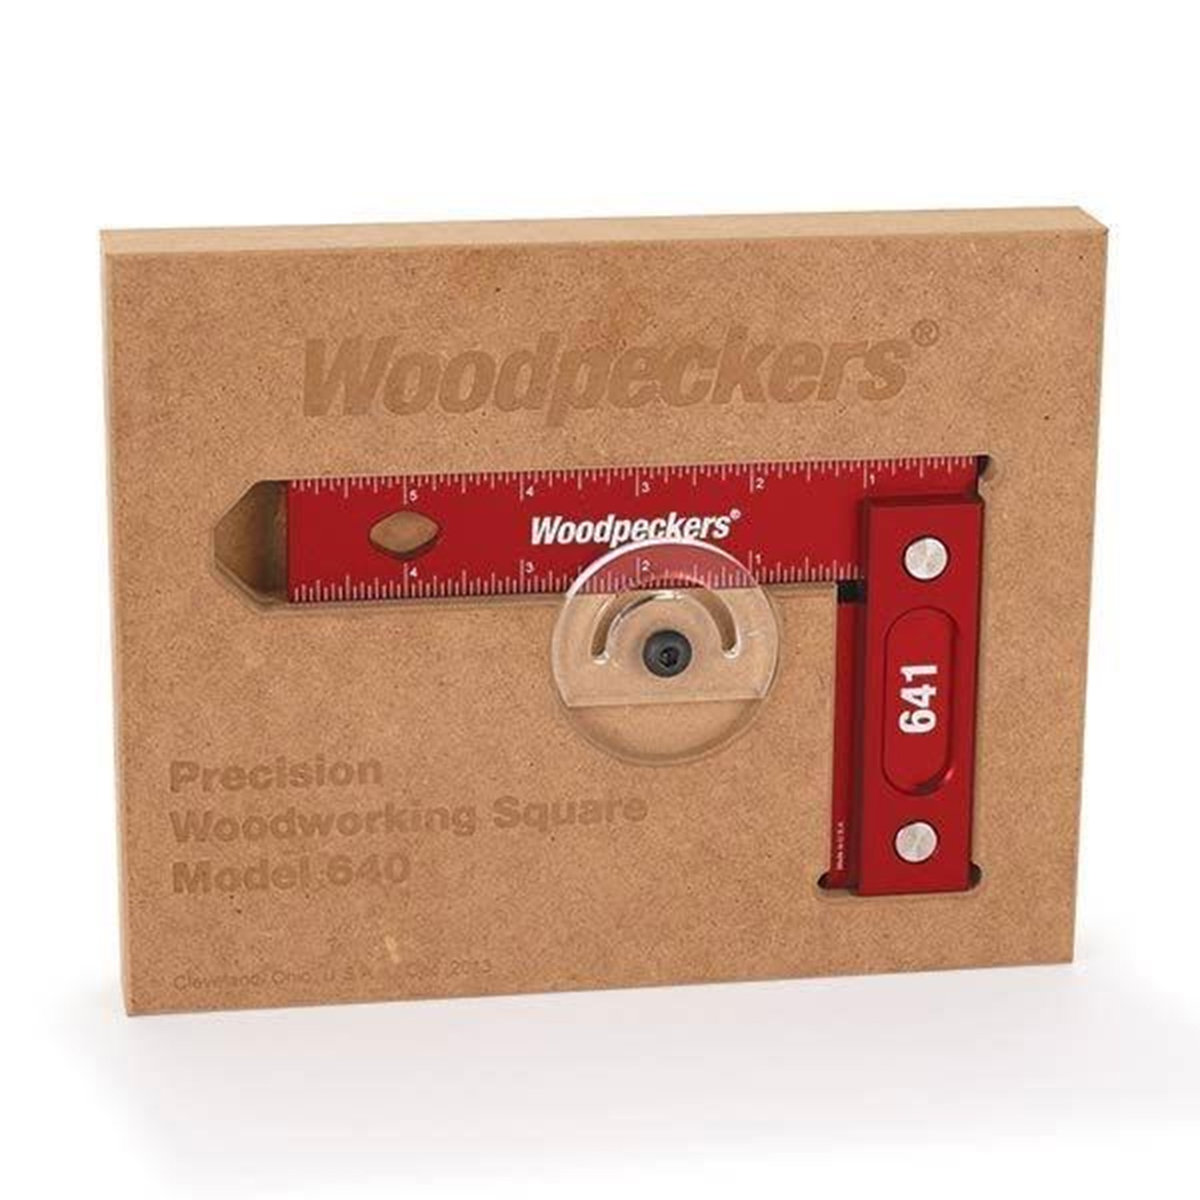 641 Precision Woodworking Square 6 X 4 With Wall Mountable Storage Squarer View A Larger Image Of